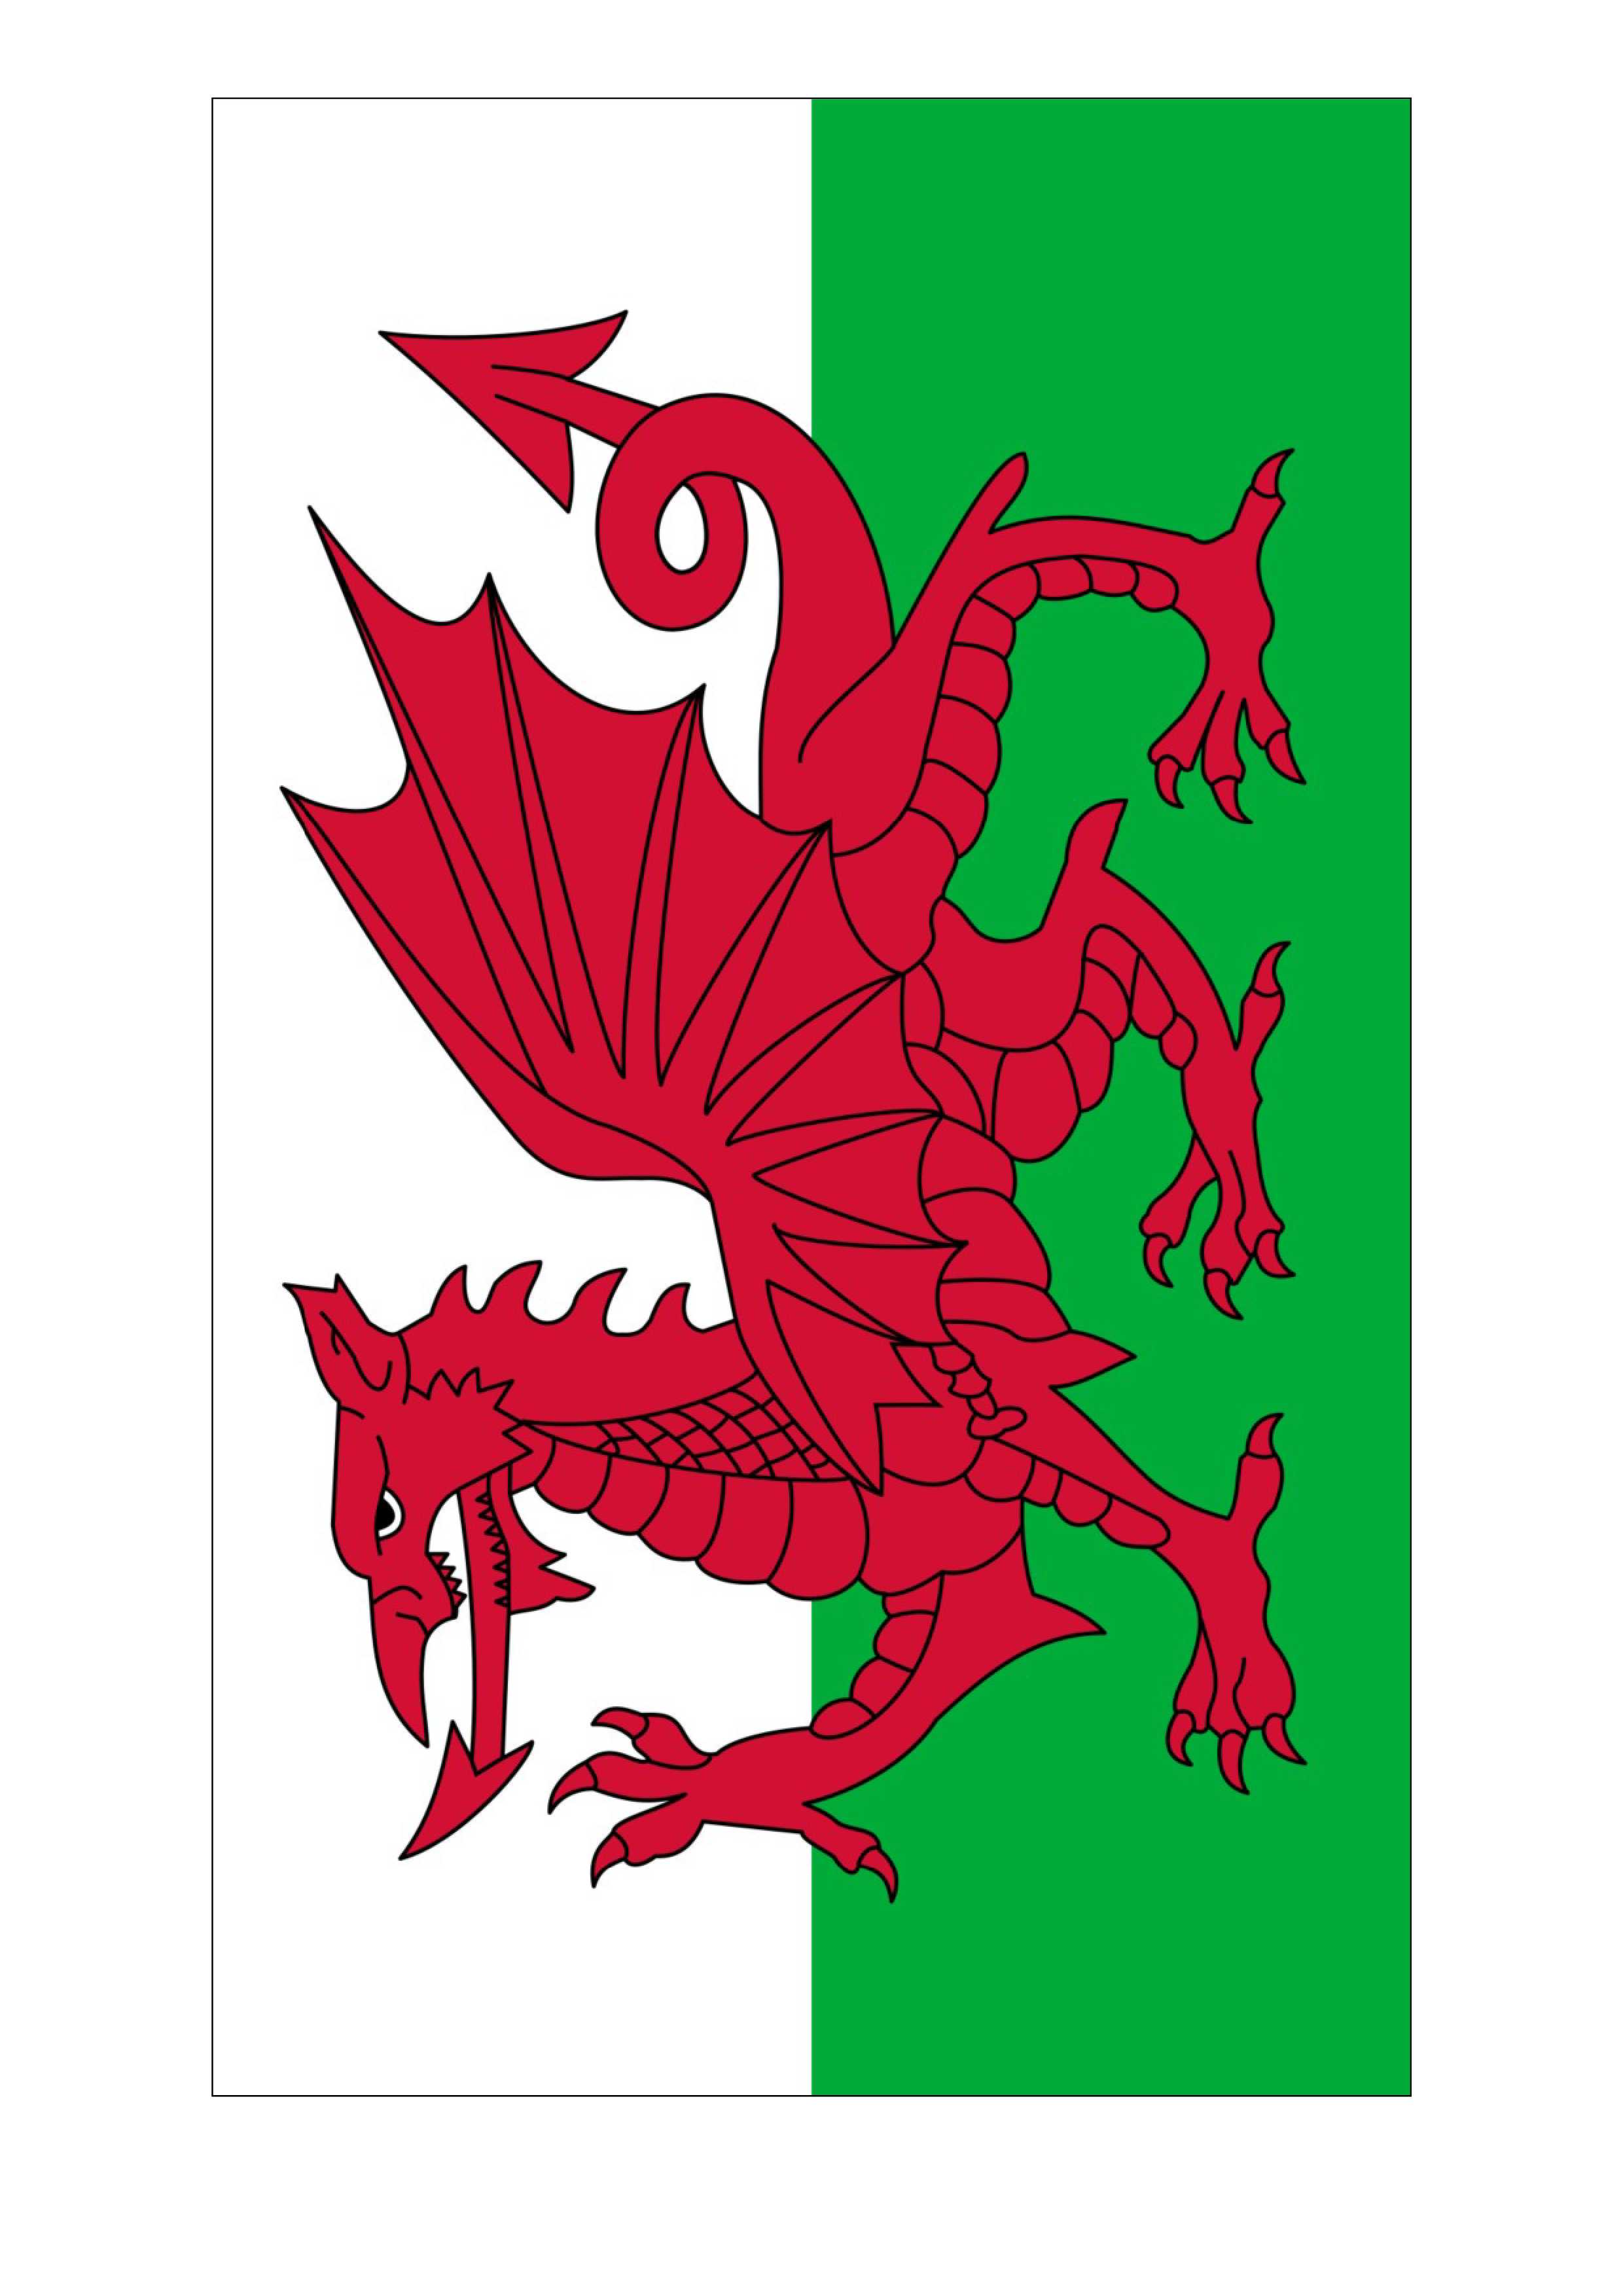 St David S Day Pictures To Print Colour Saint David S Day Dragon Pictures To Color Saint David